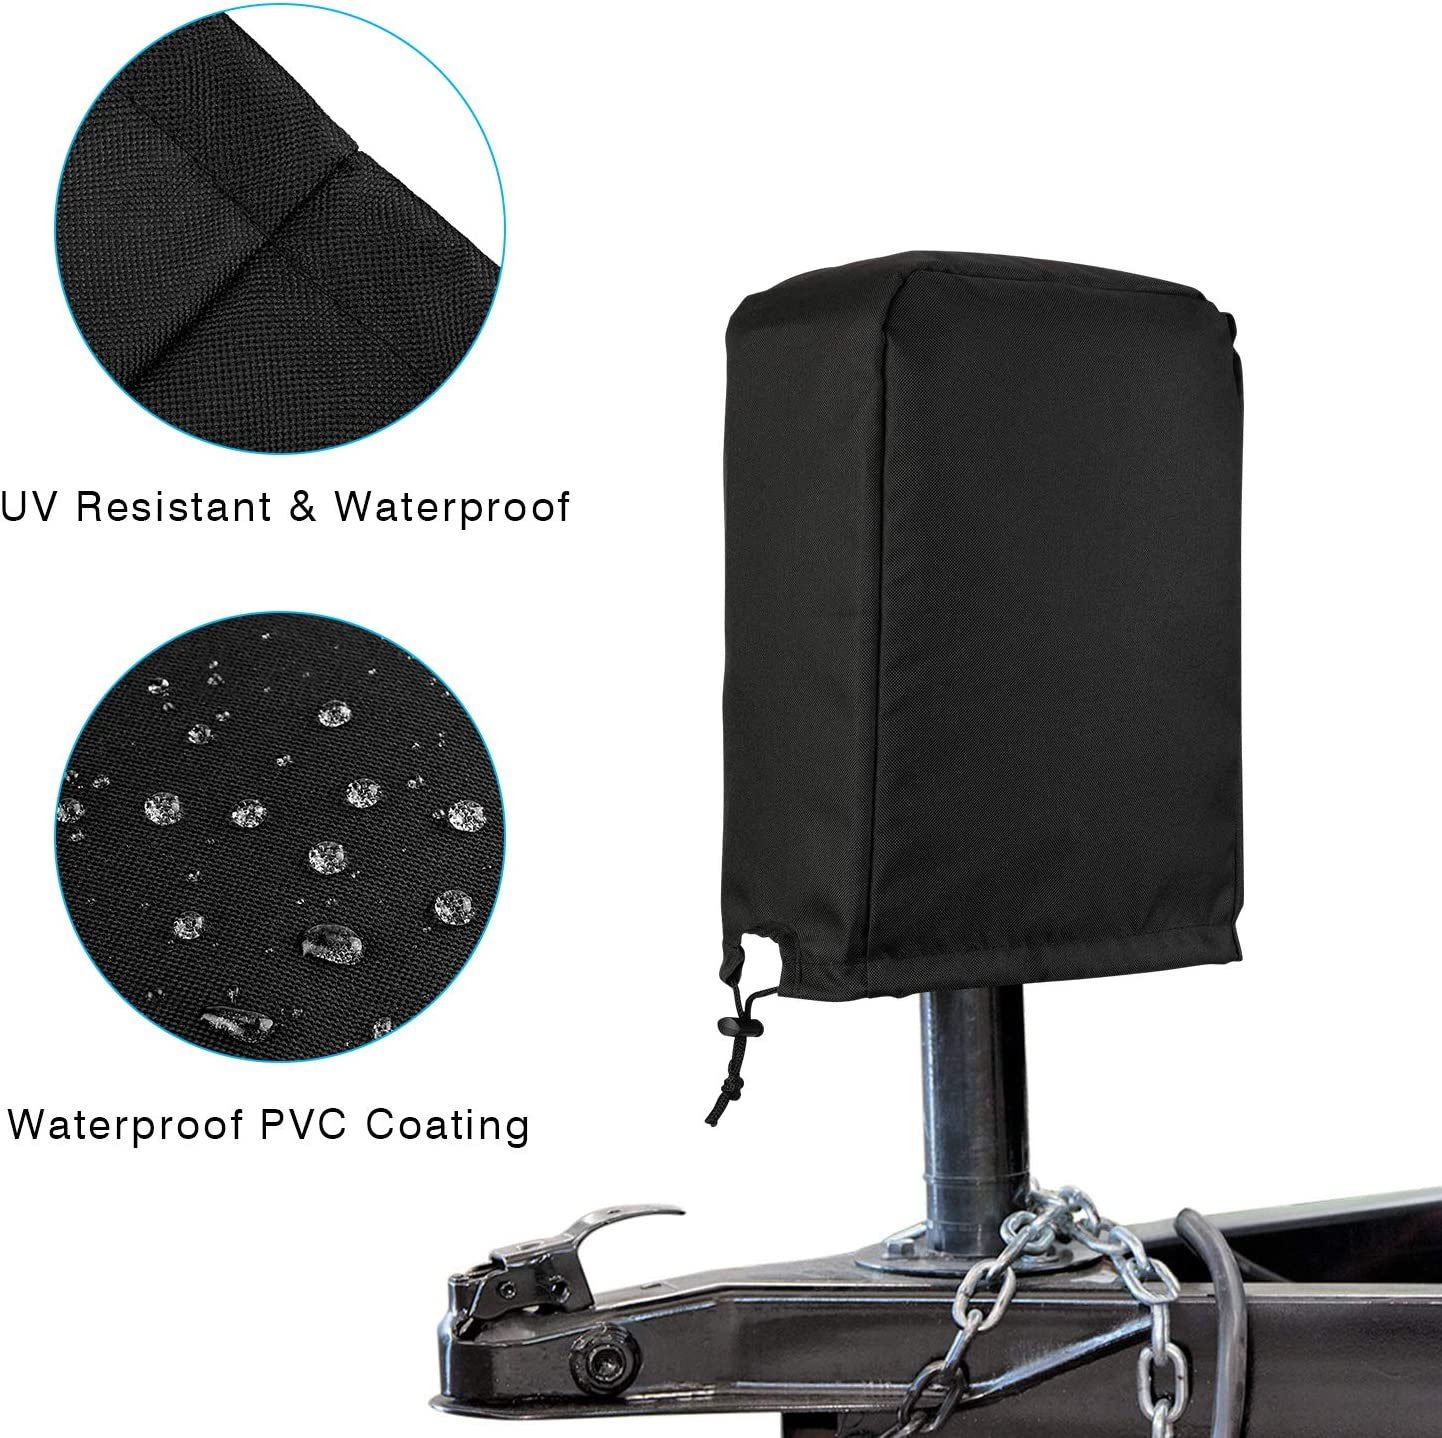 Black Large Waterproof Electric Tongue Jack Cover For RV Power Trailer Brand New